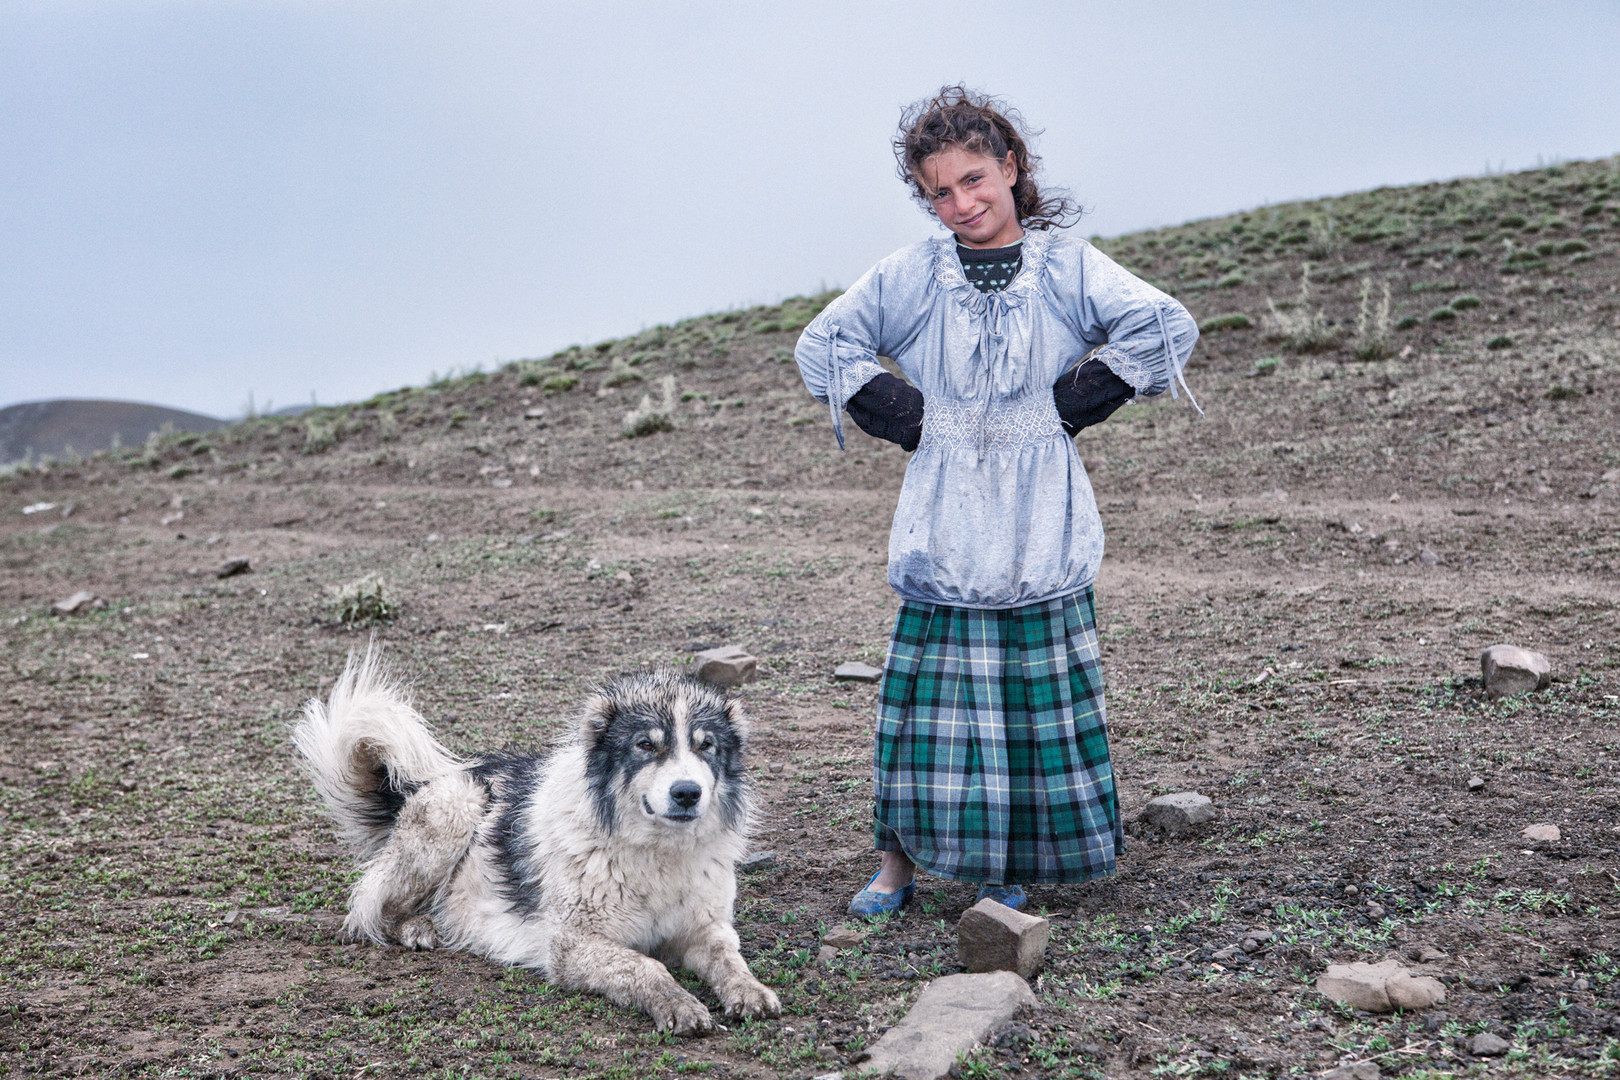 Kardelen and Her Dog. Dogs protect people at the highland against dangers. Kesis Plateau, Van. July 2012.